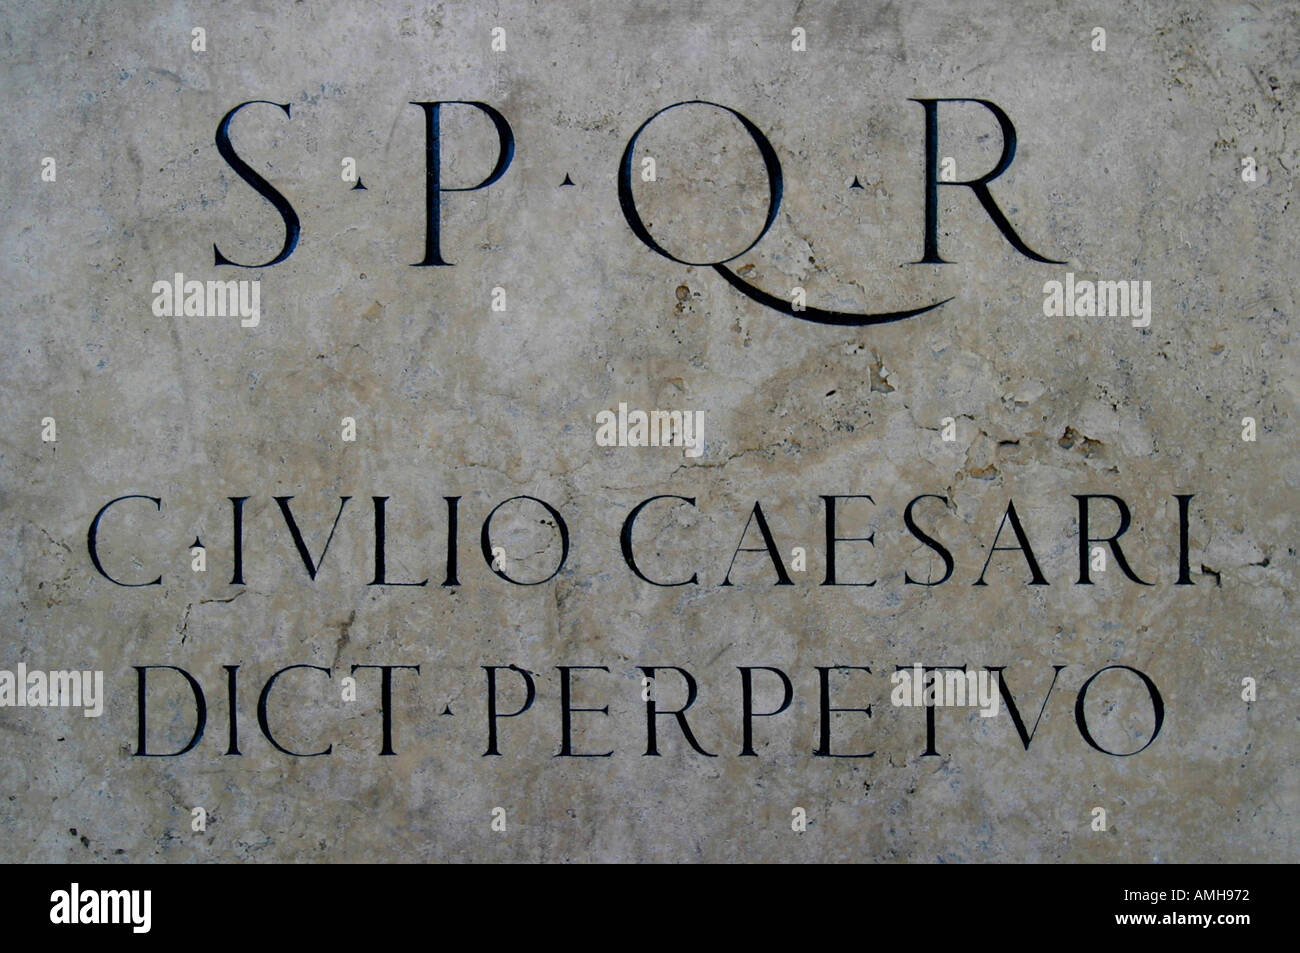 Engraved words on the plaque of the julius caesar statue - Stock Image